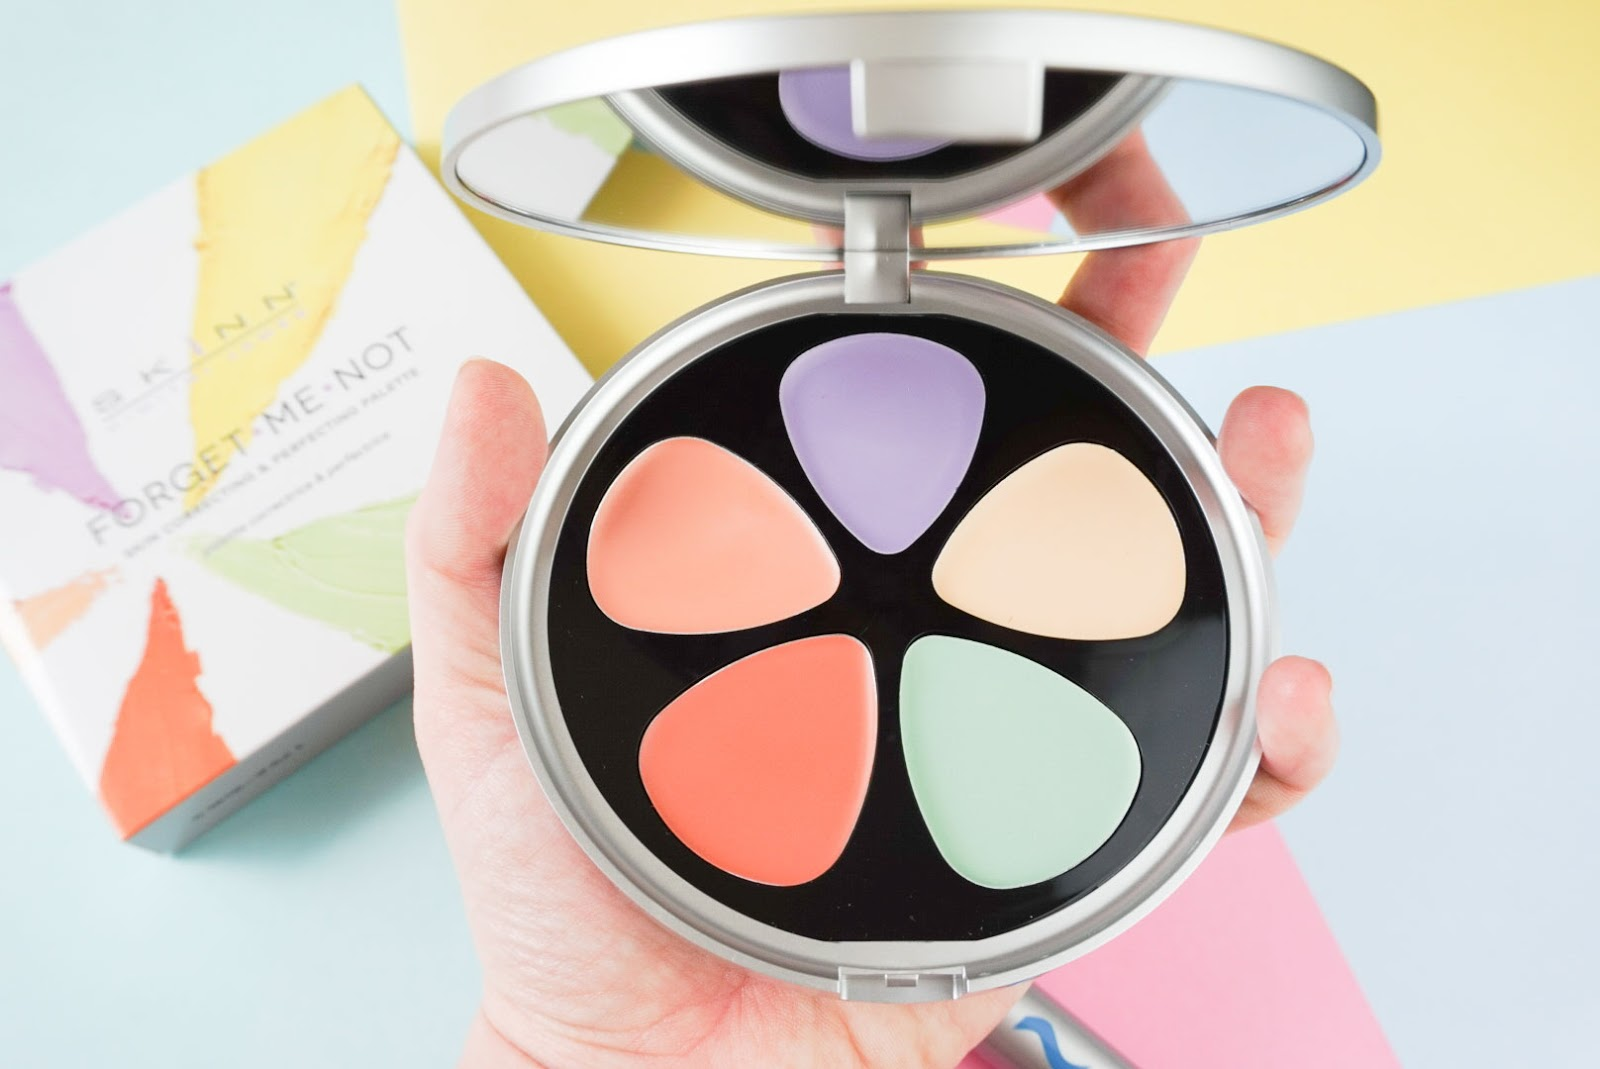 Skinn Cosmetics Forget Me Not Perfecting and Correcting Palette from Ideal World TV Review